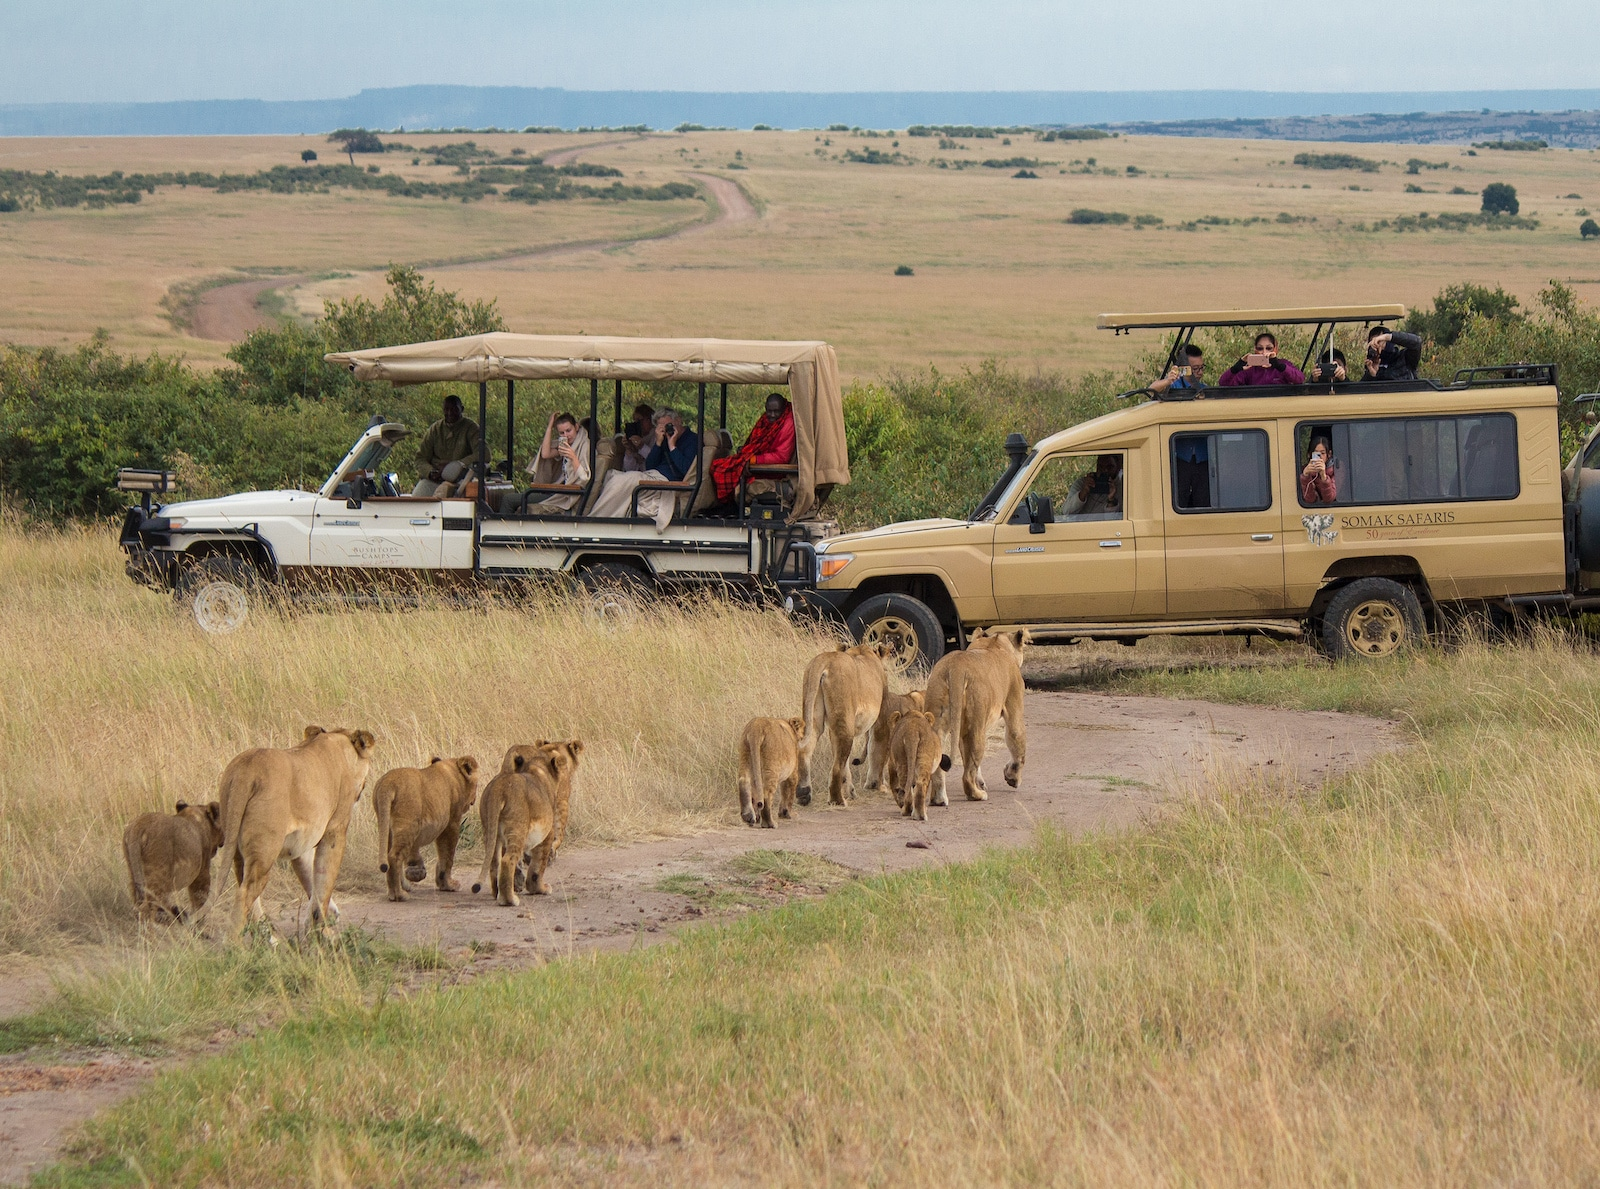 Serengeti National Park in Mara Region, Tanzania